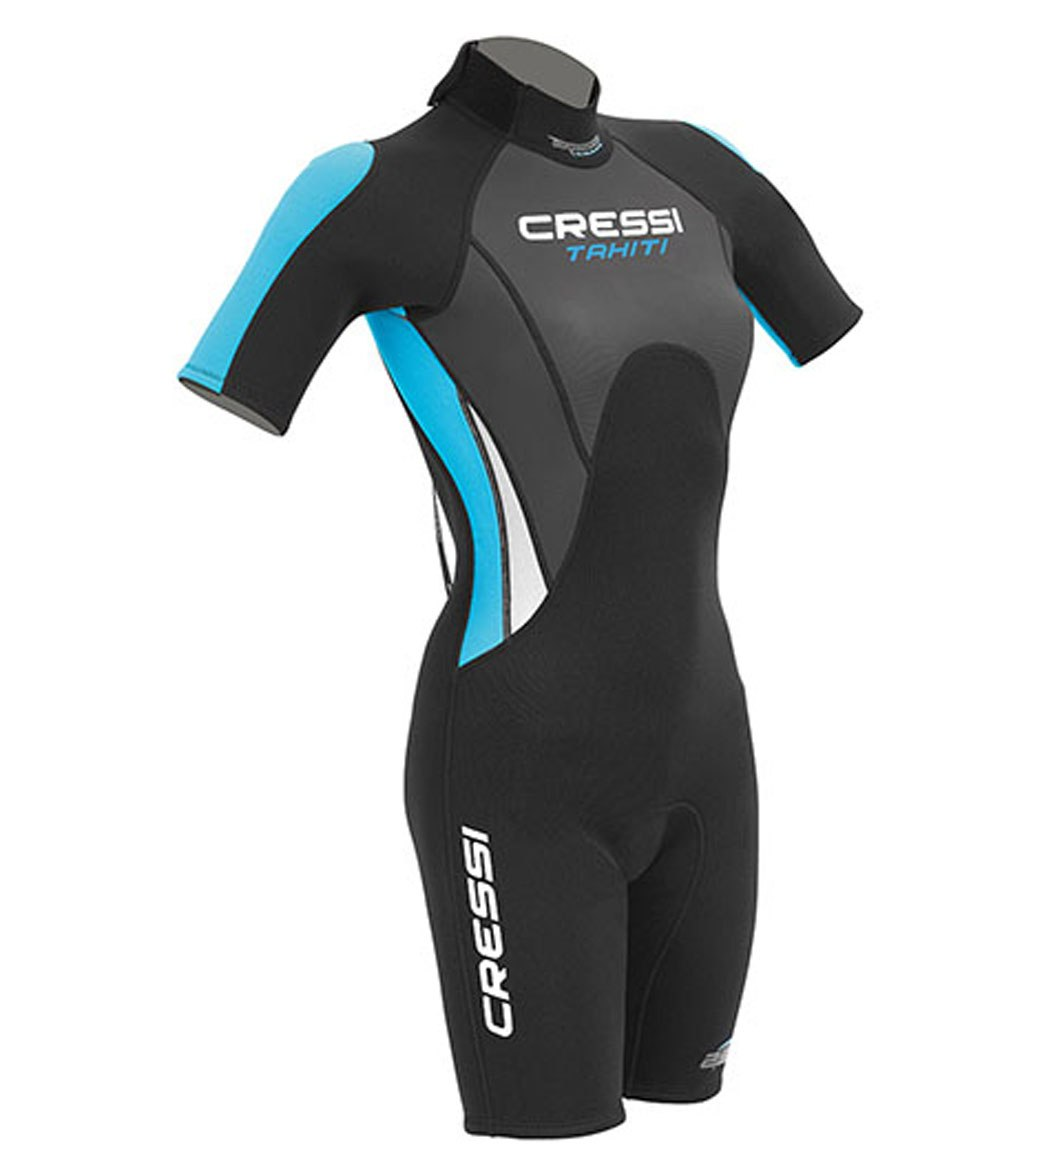 Cressi Women s Tahiti Shorty Wetsuit at SwimOutlet.com - Free Shipping 059822185